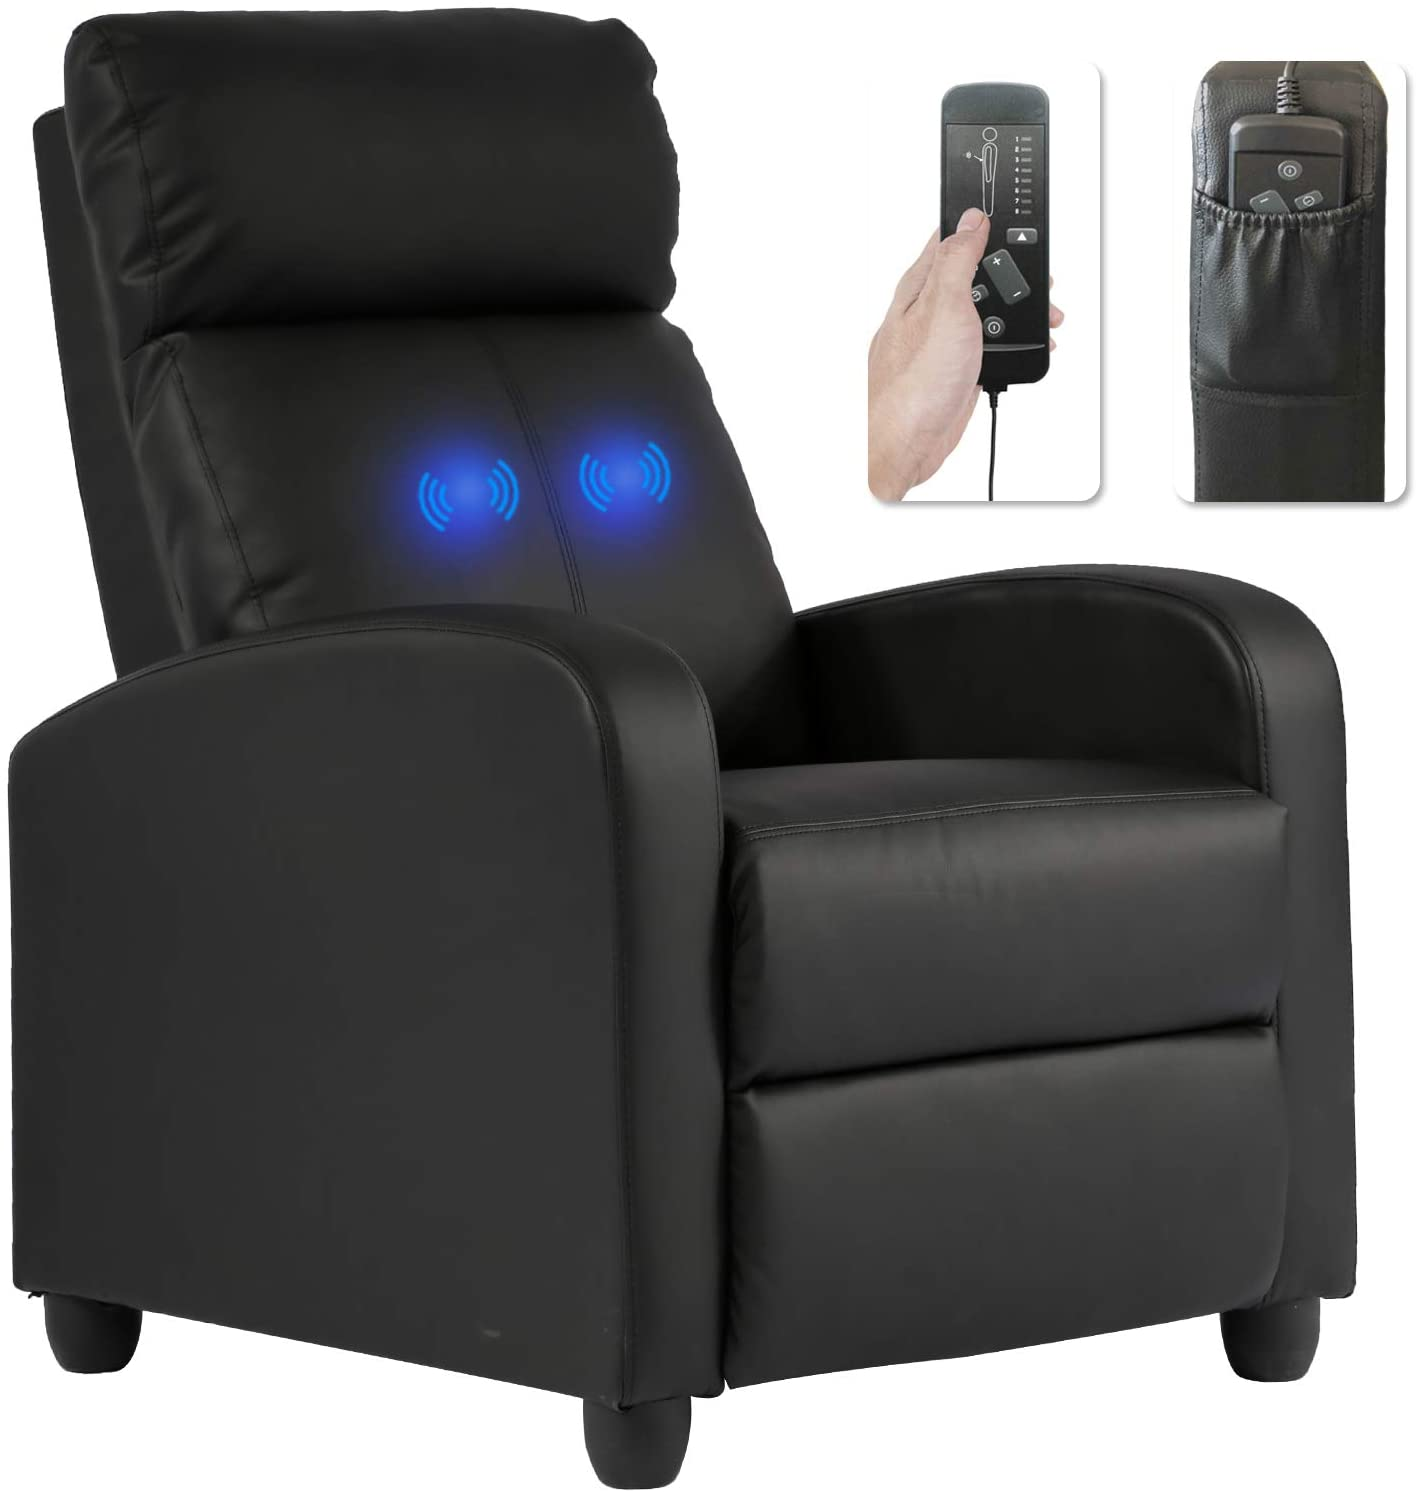 BestMassage Recliner Chair for Living Room Massage